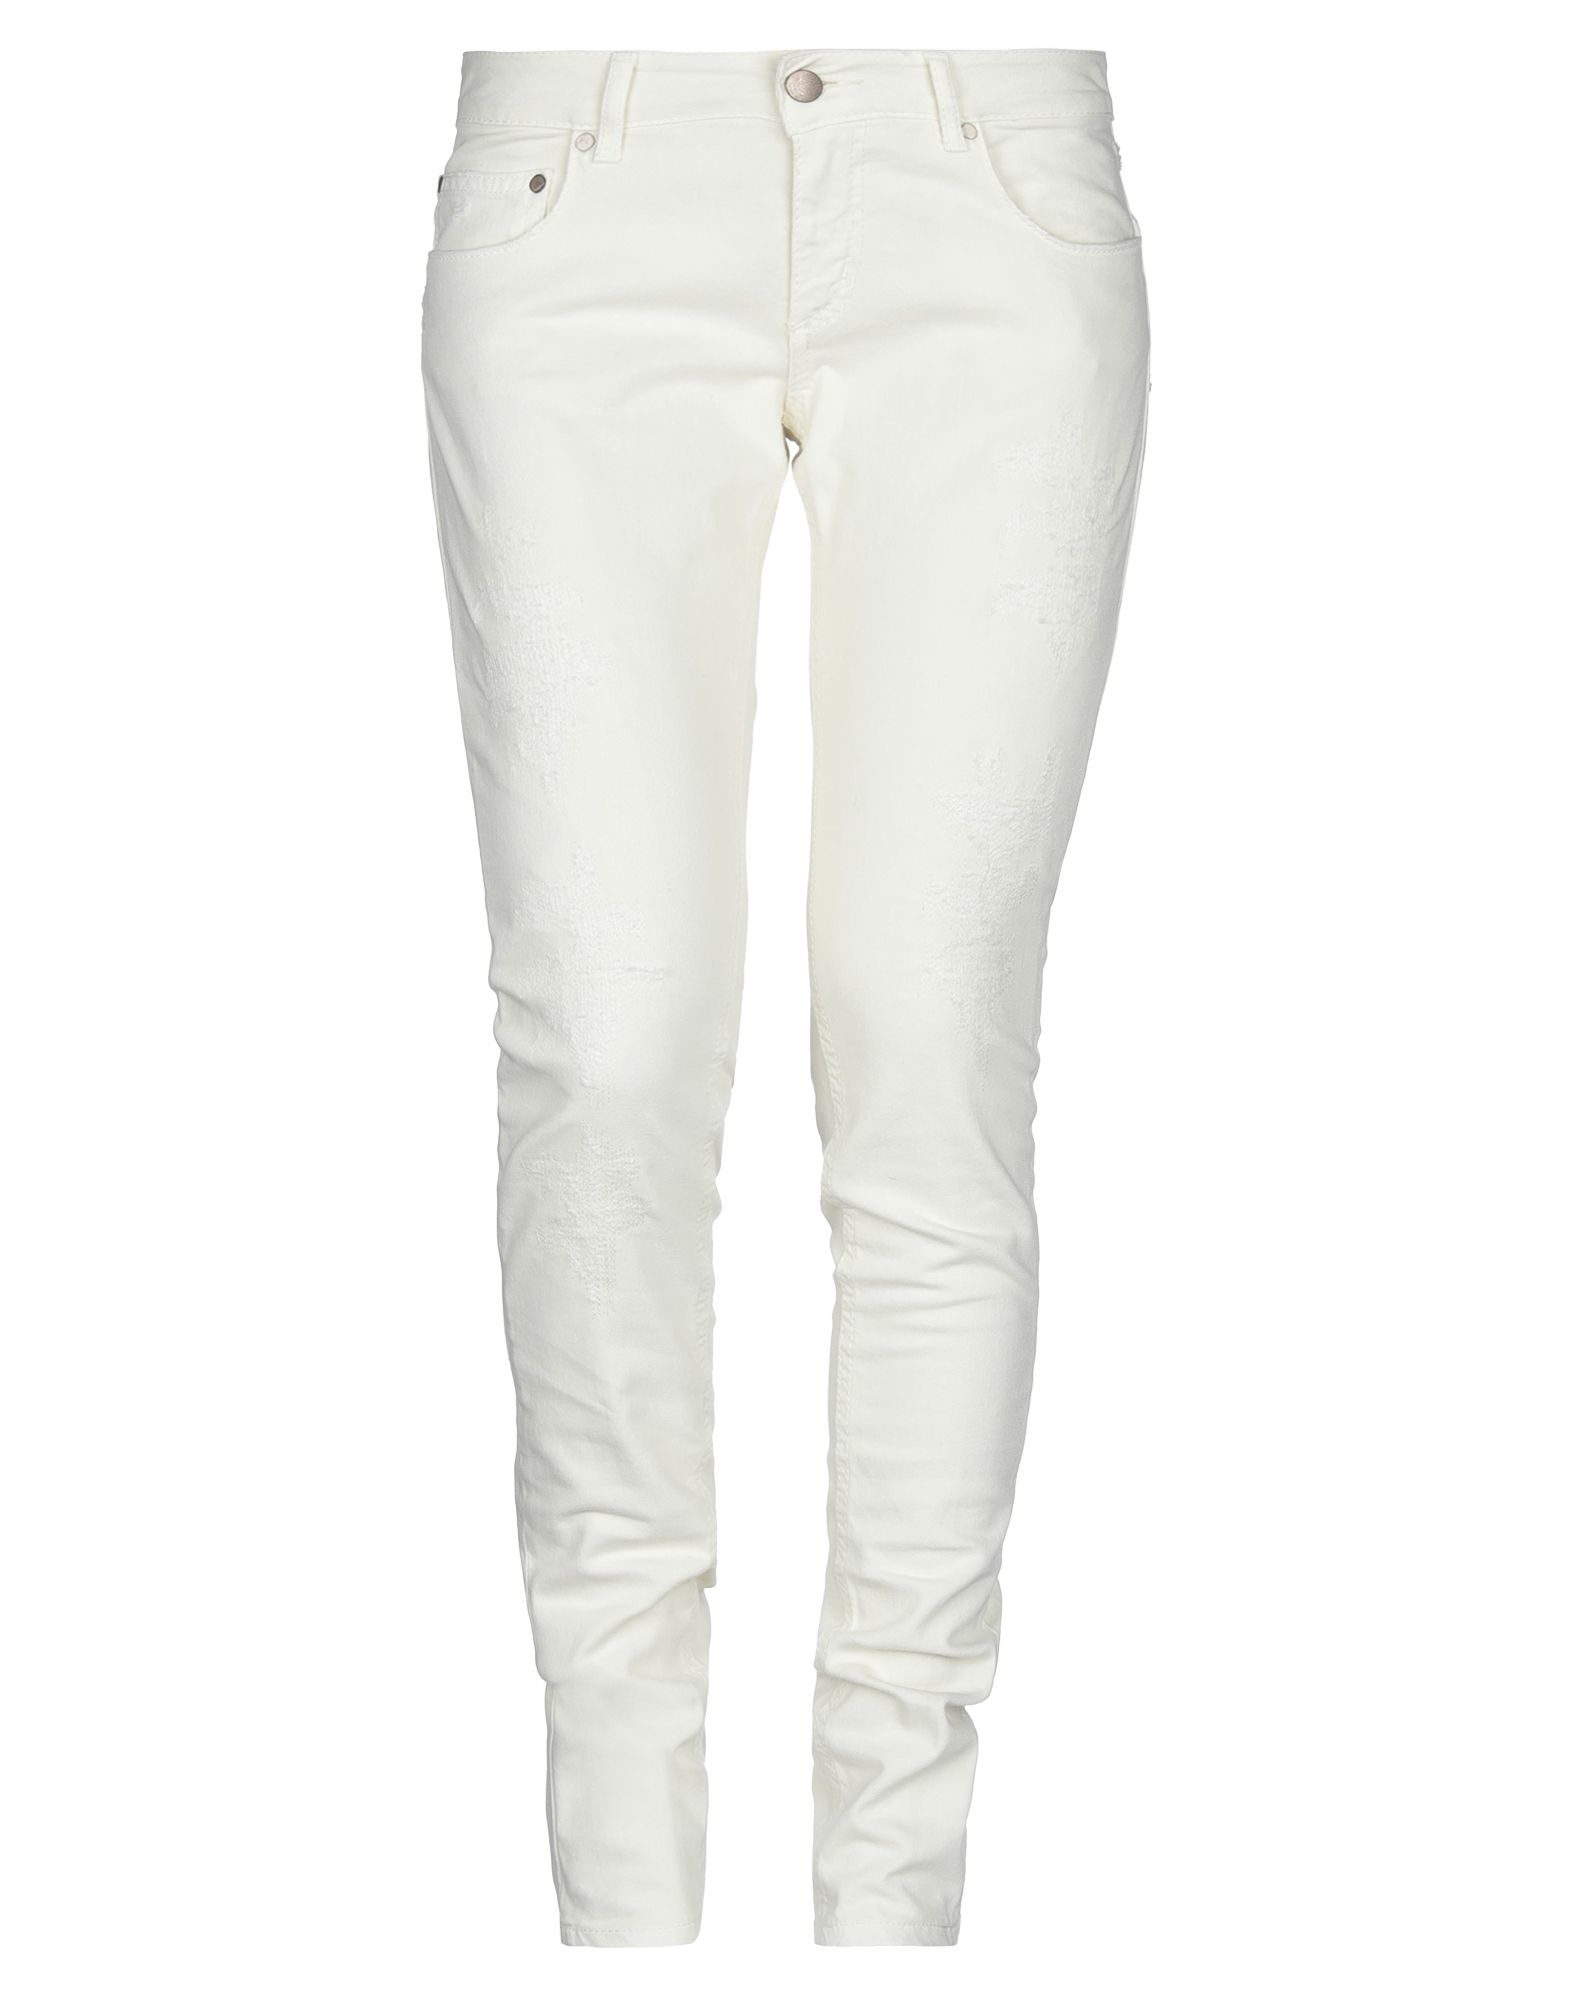 DONDUP Jeans. model: lambda, denim, logo, solid color, colored wash, low waisted, button, zip, multipockets, stretch. 97% Cotton, 3% Elastane